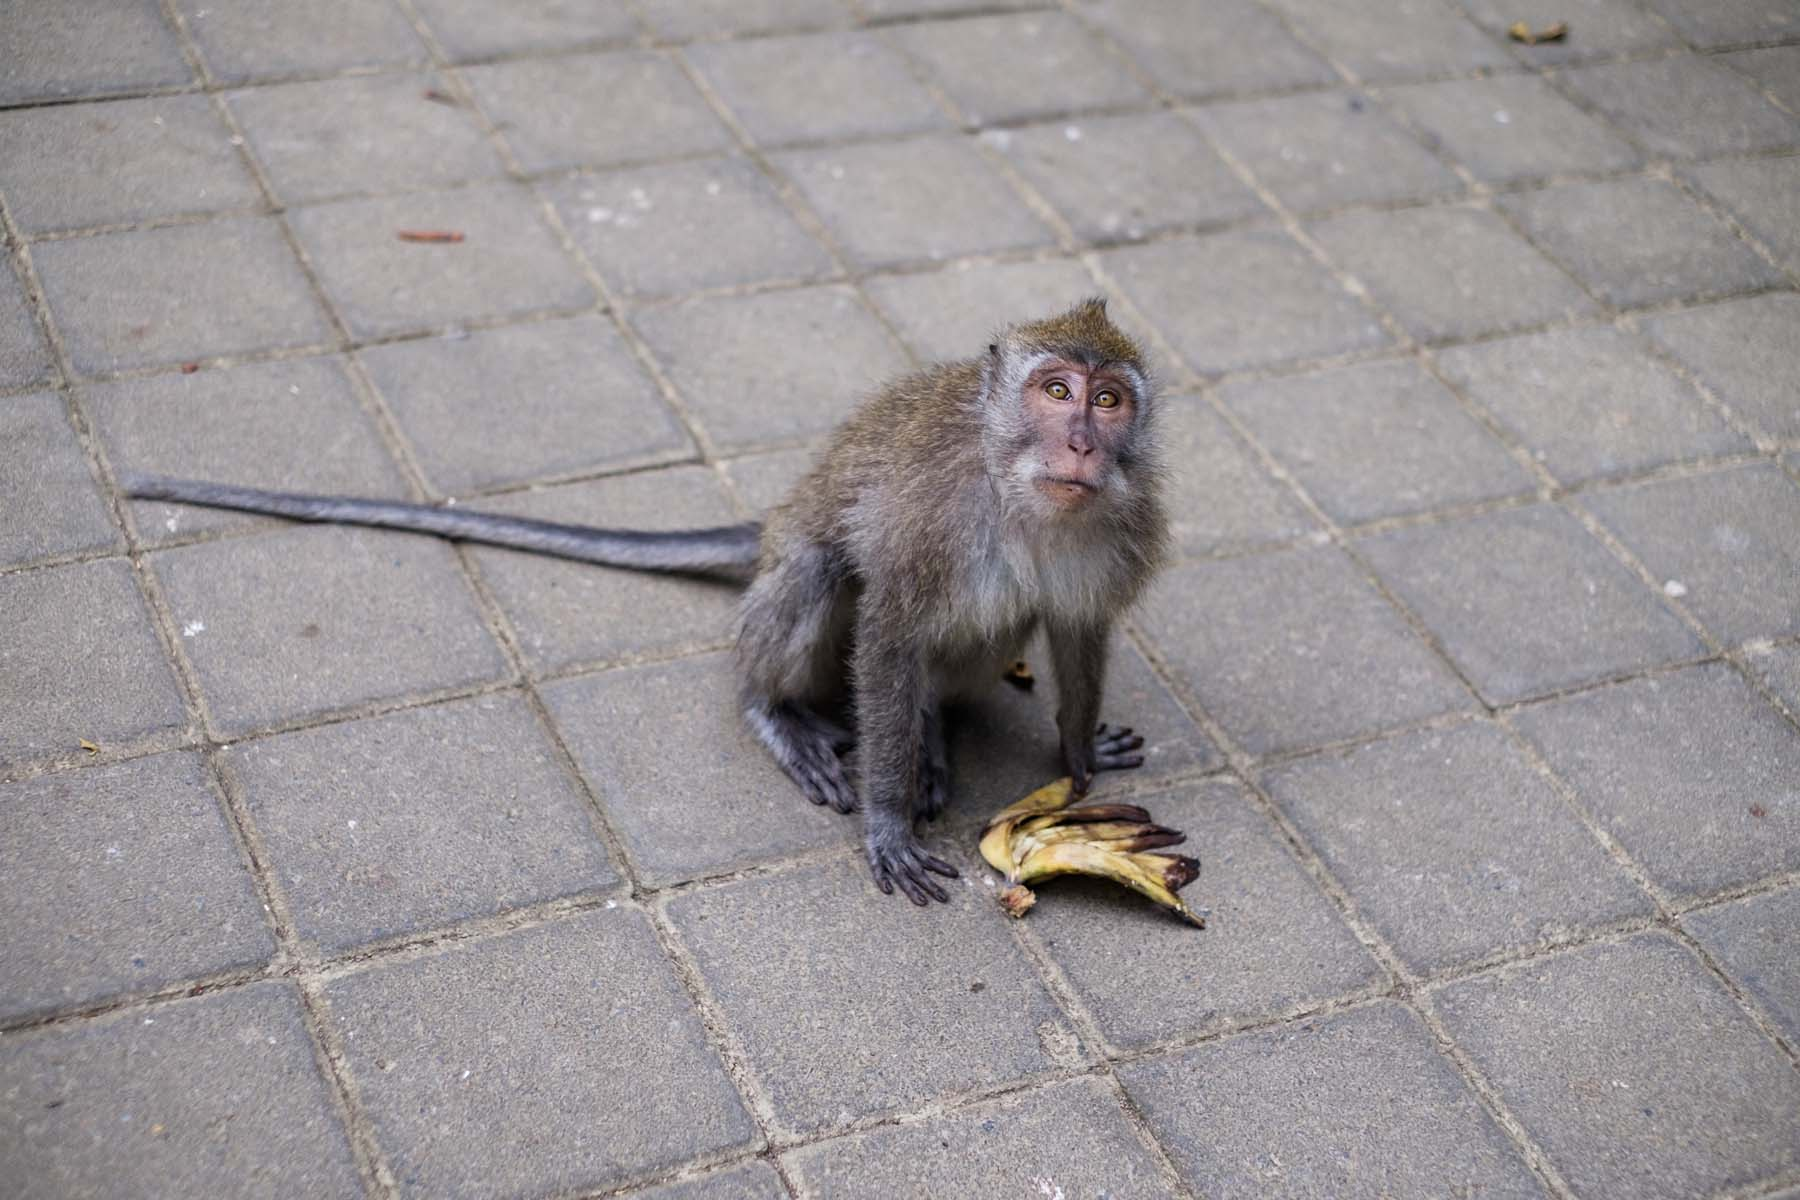 Monkey with its banana Bali Indonesia